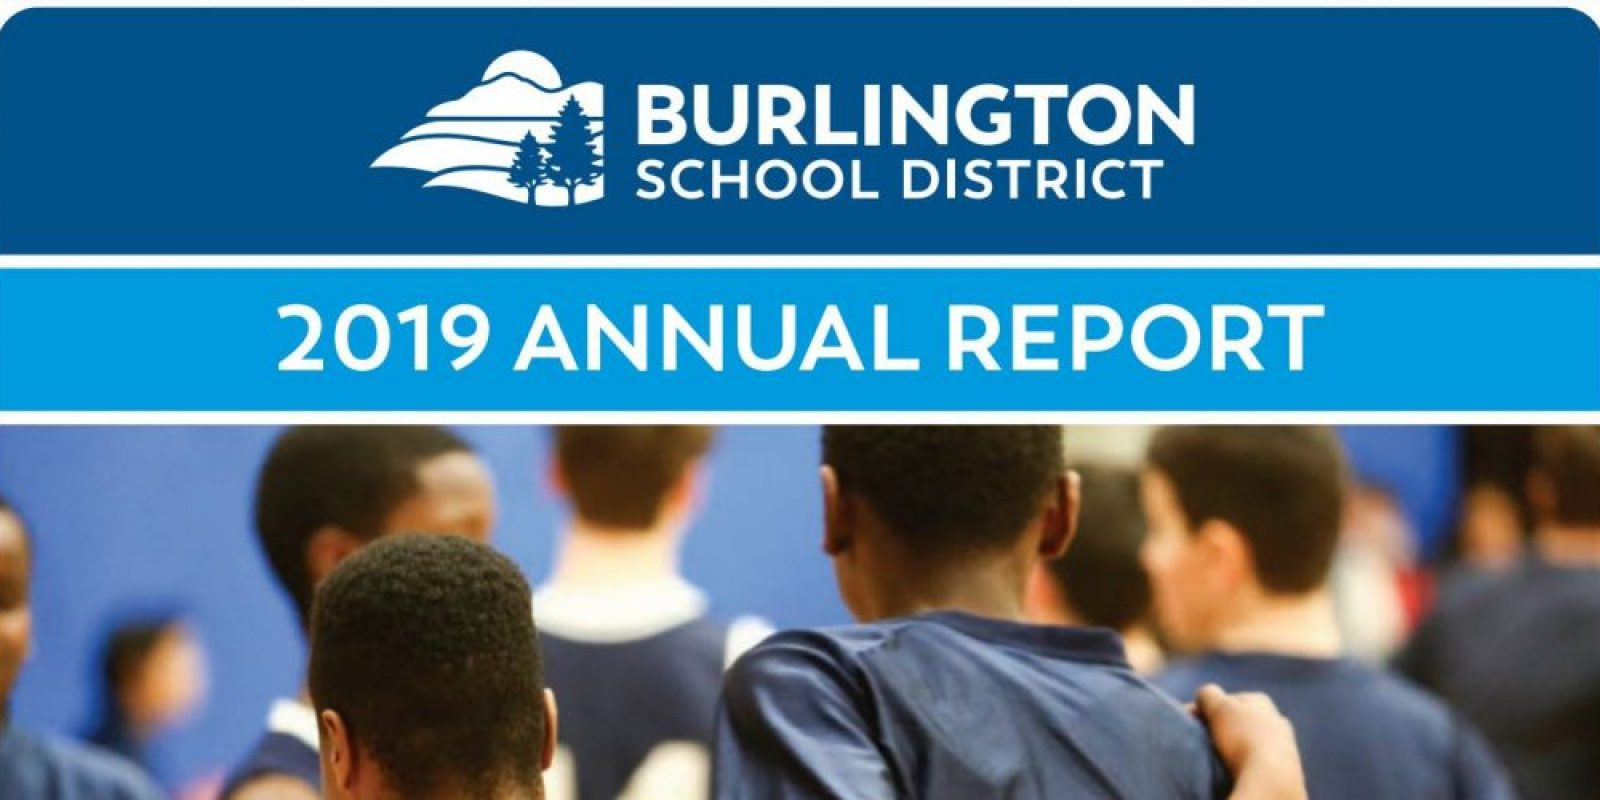 burlington-vermont-school-annual-report-2019